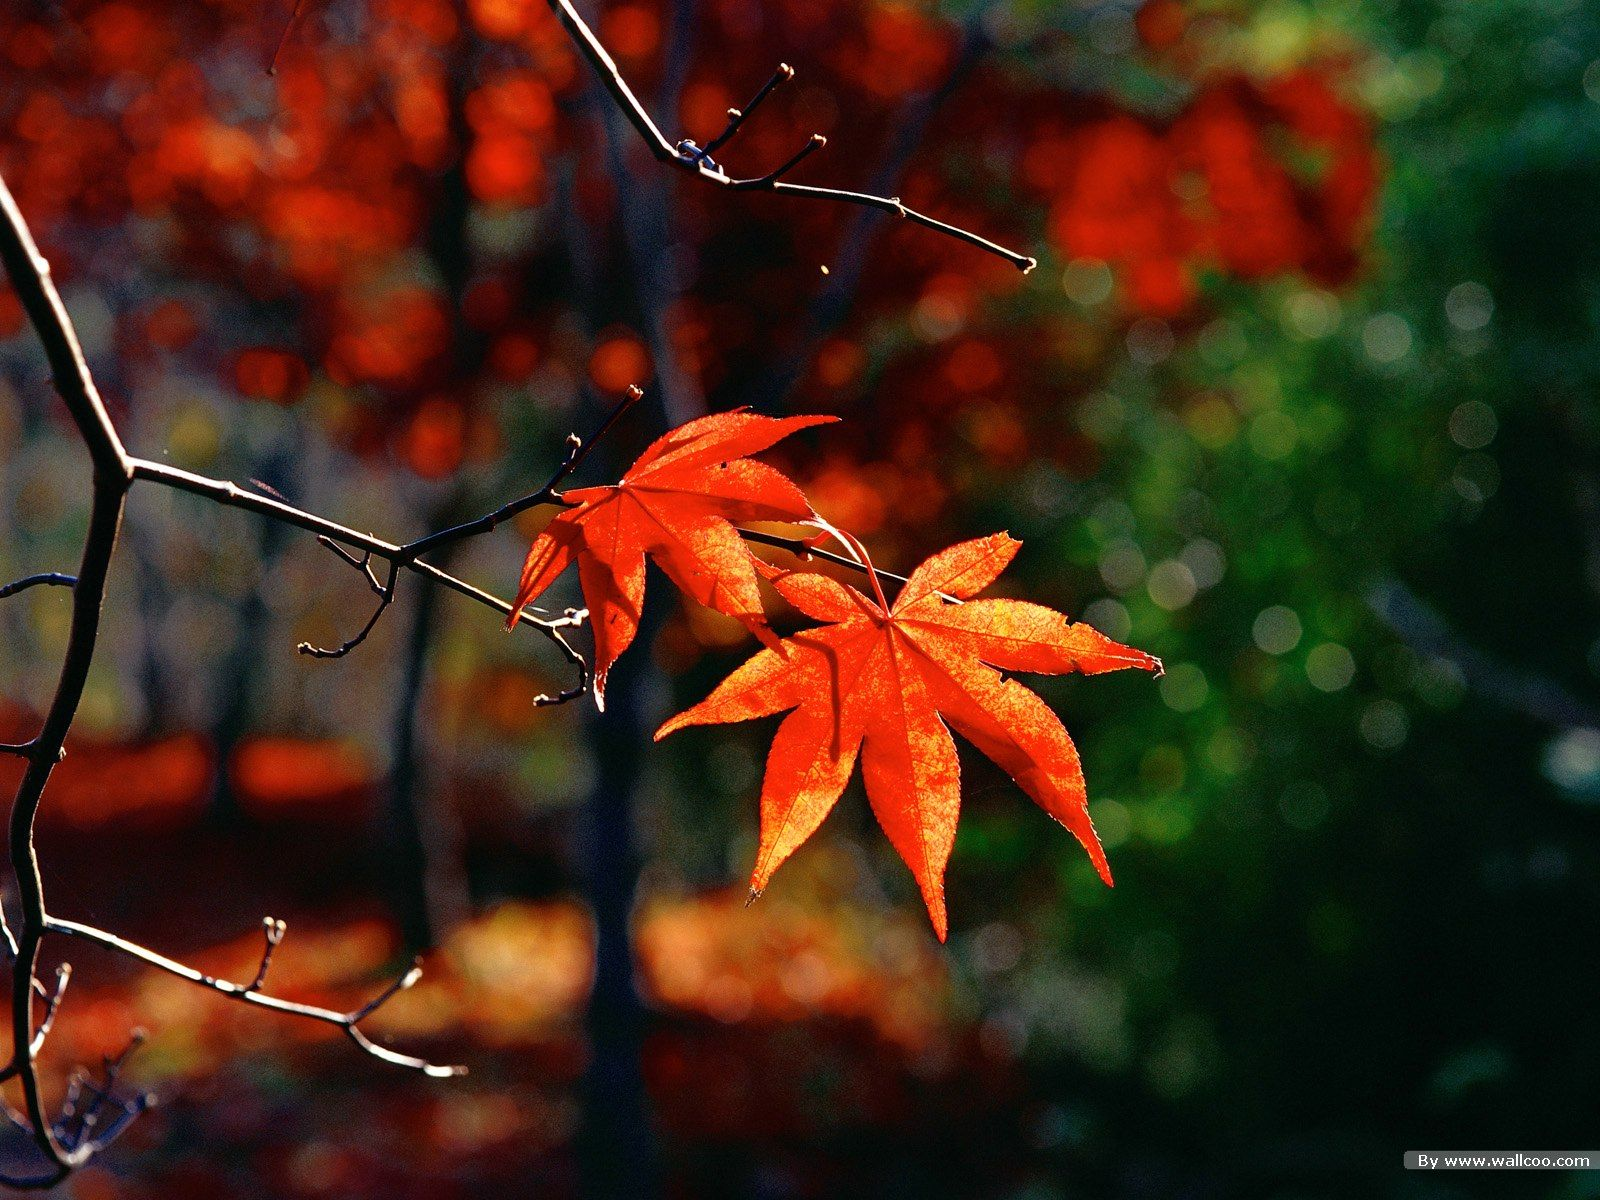 Autumn Leaves Hd Wallpapers Top Free Autumn Leaves Hd